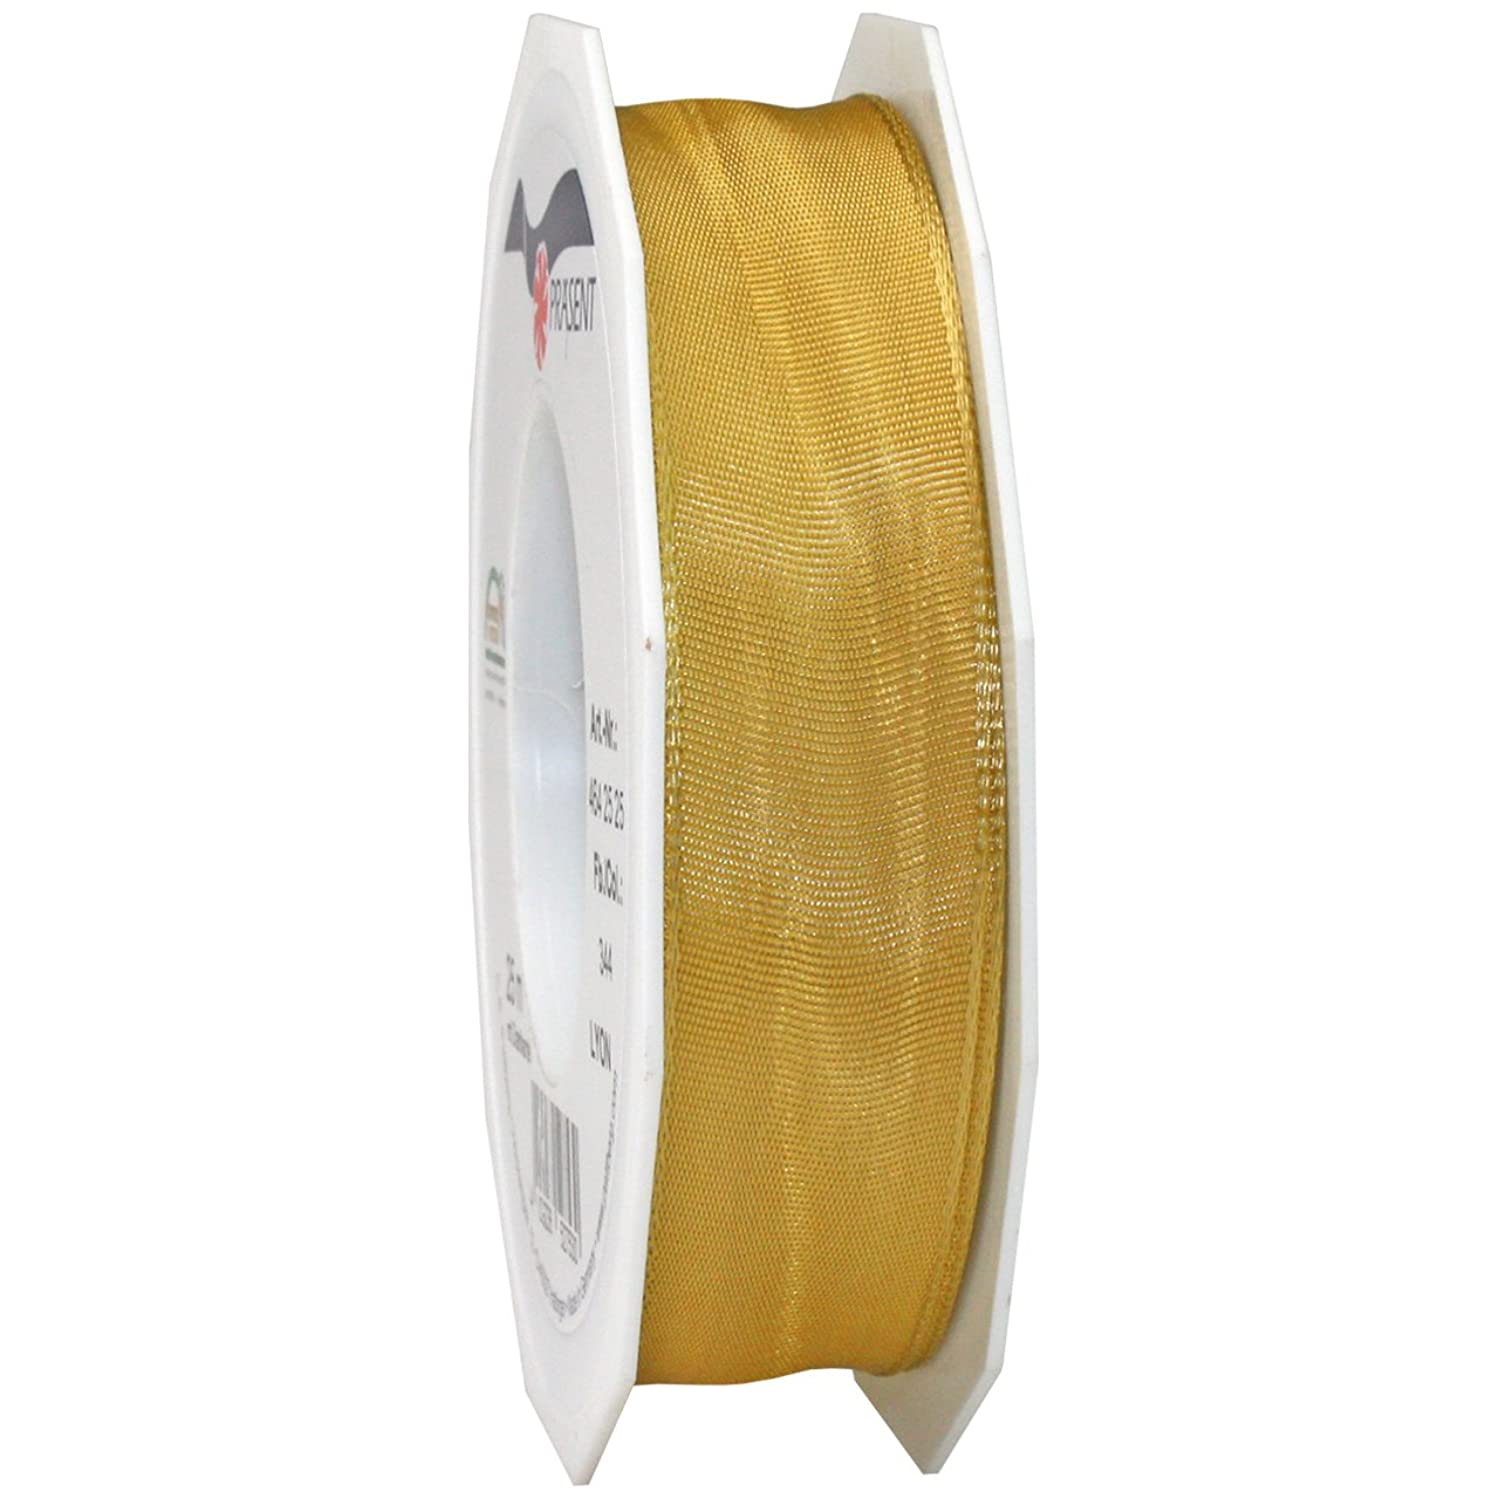 Morex Ribbon French Wired Lyon Ribbon, 1-Inch by 27-Yard Spool, Old Gold